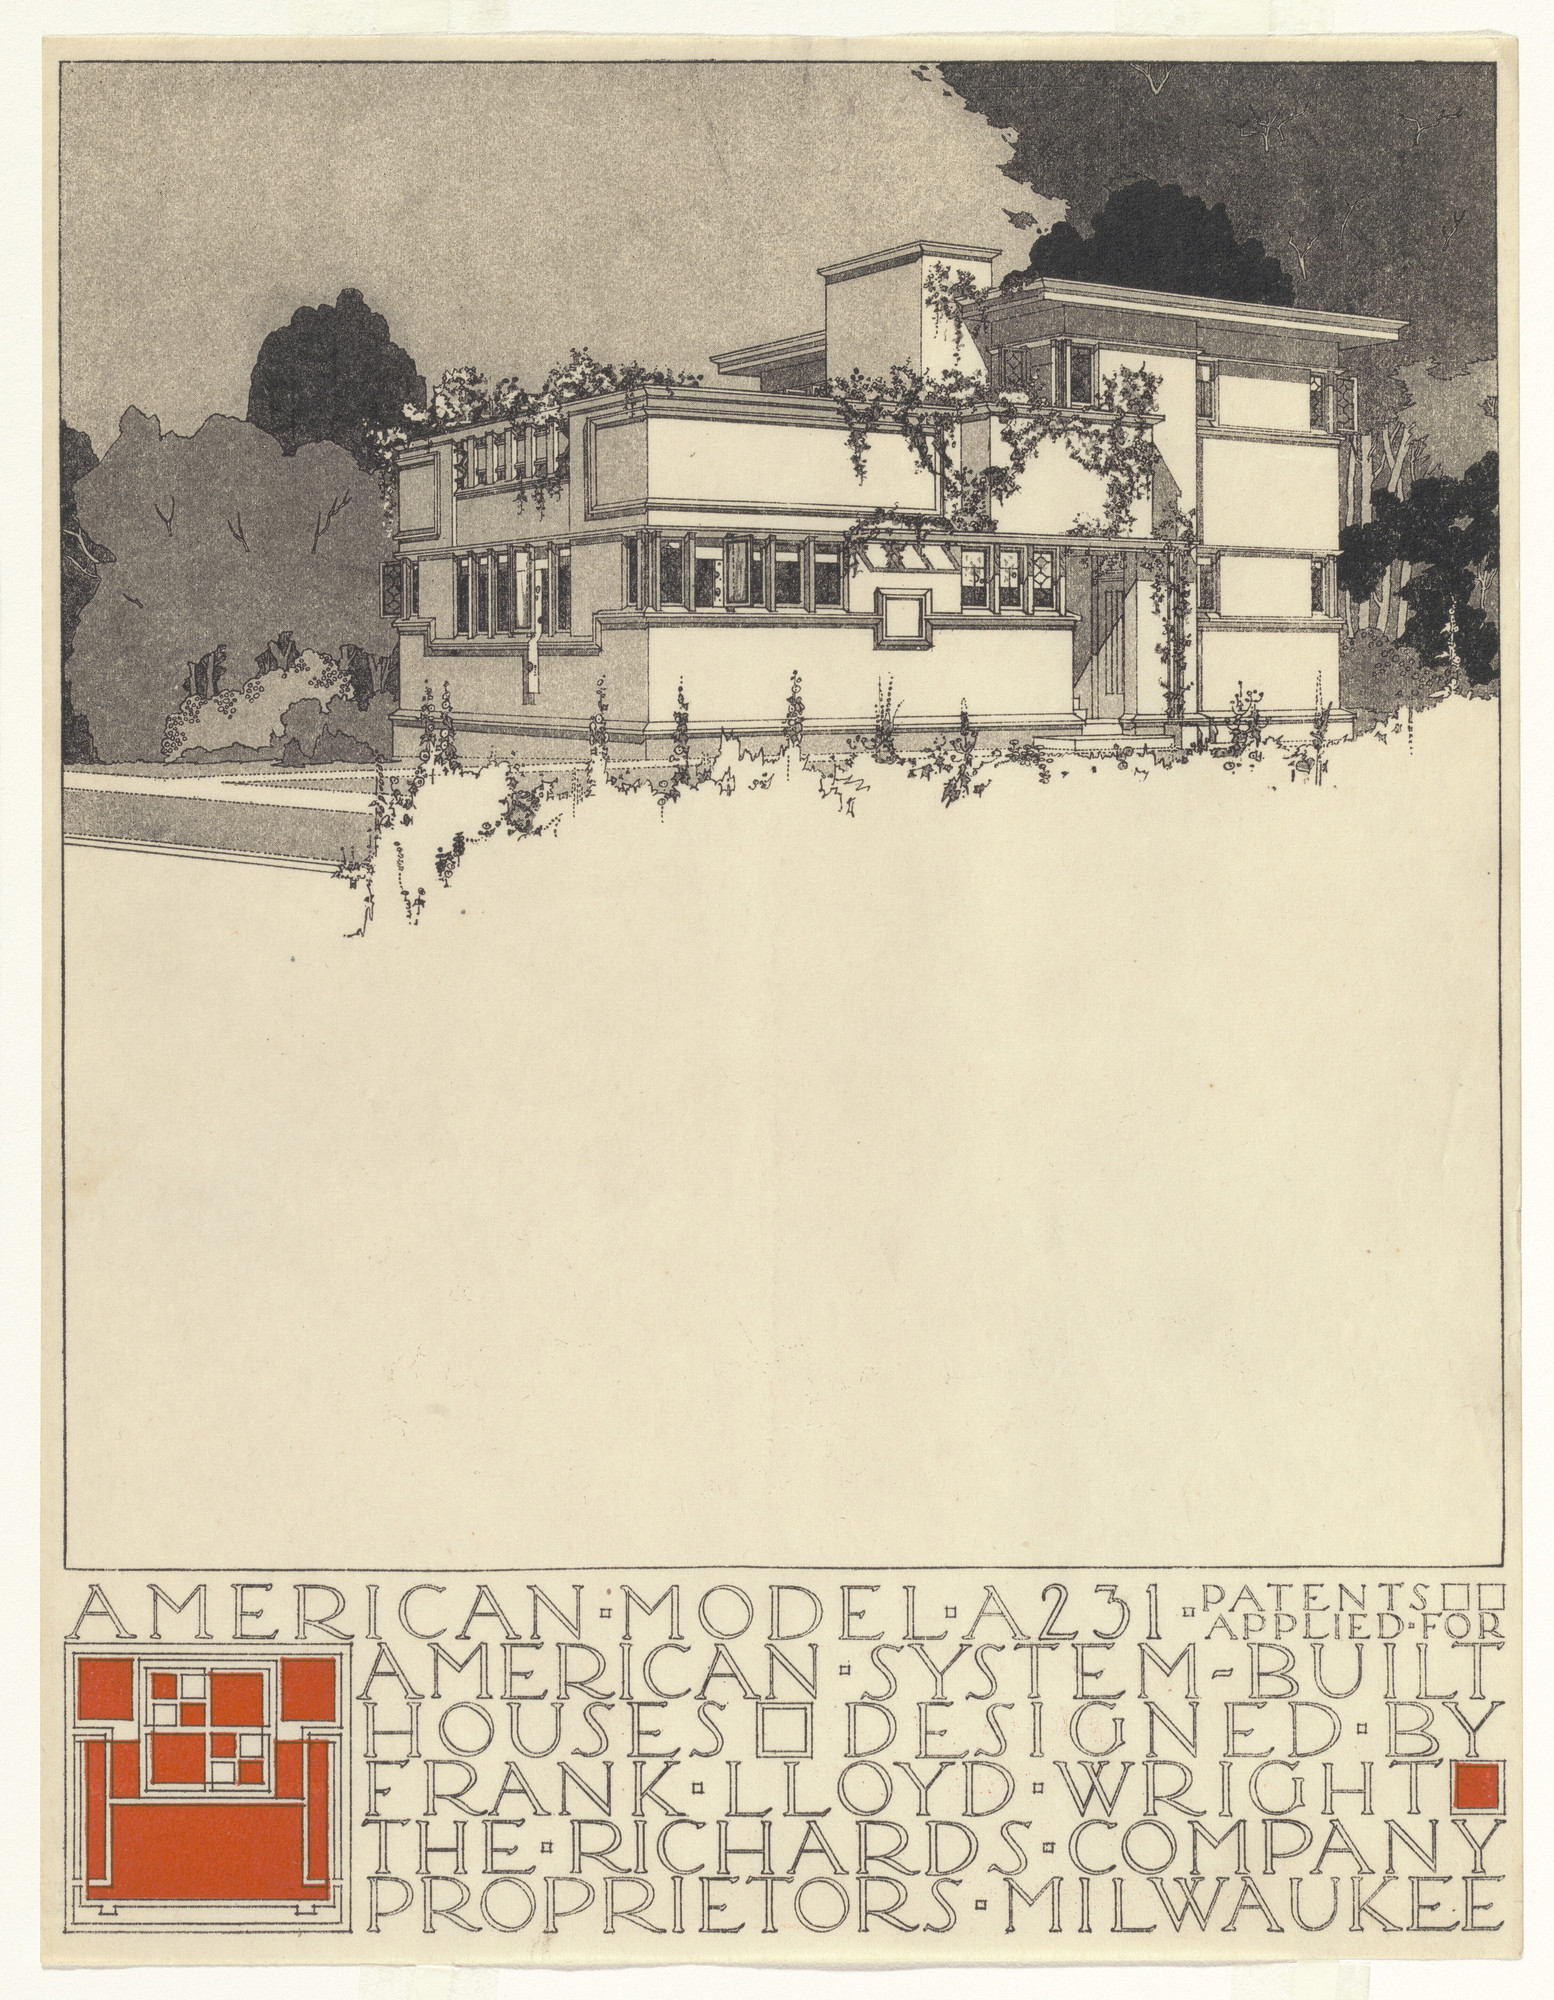 Frank Lloyd Wright. American System-Built Houses for The Richards Company project (Exterior perspective of model A231). 1915–1917